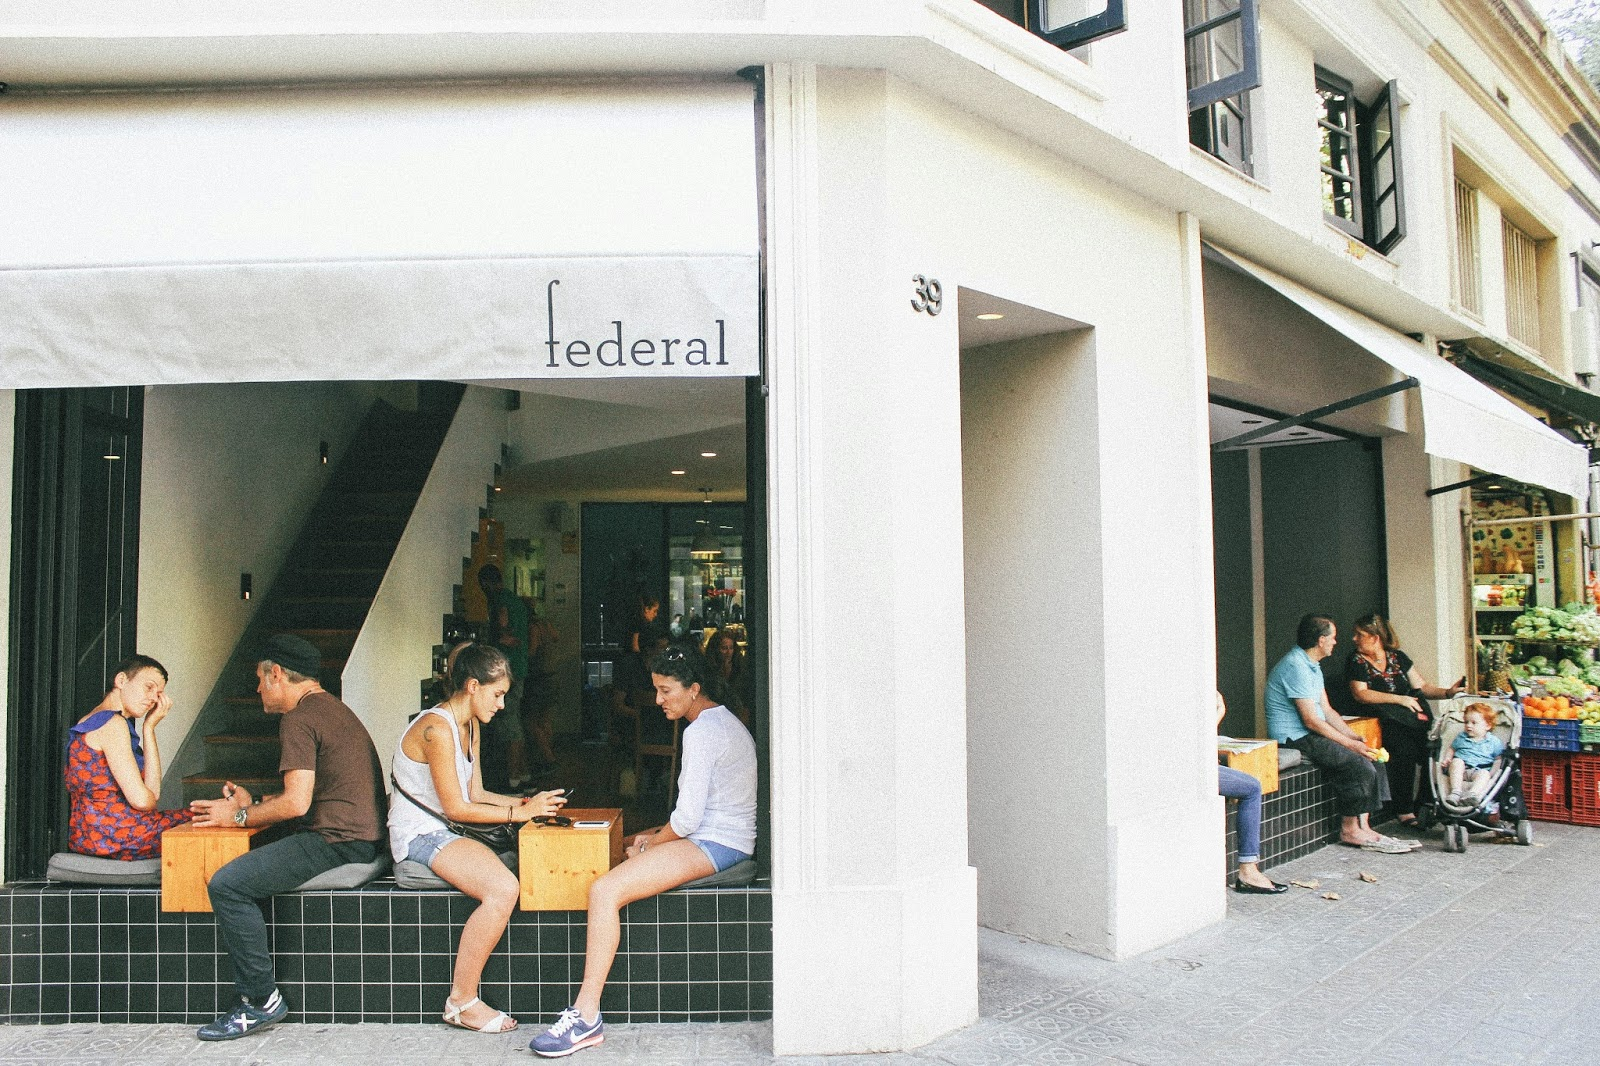 le_federal_cafe_barcelone_13